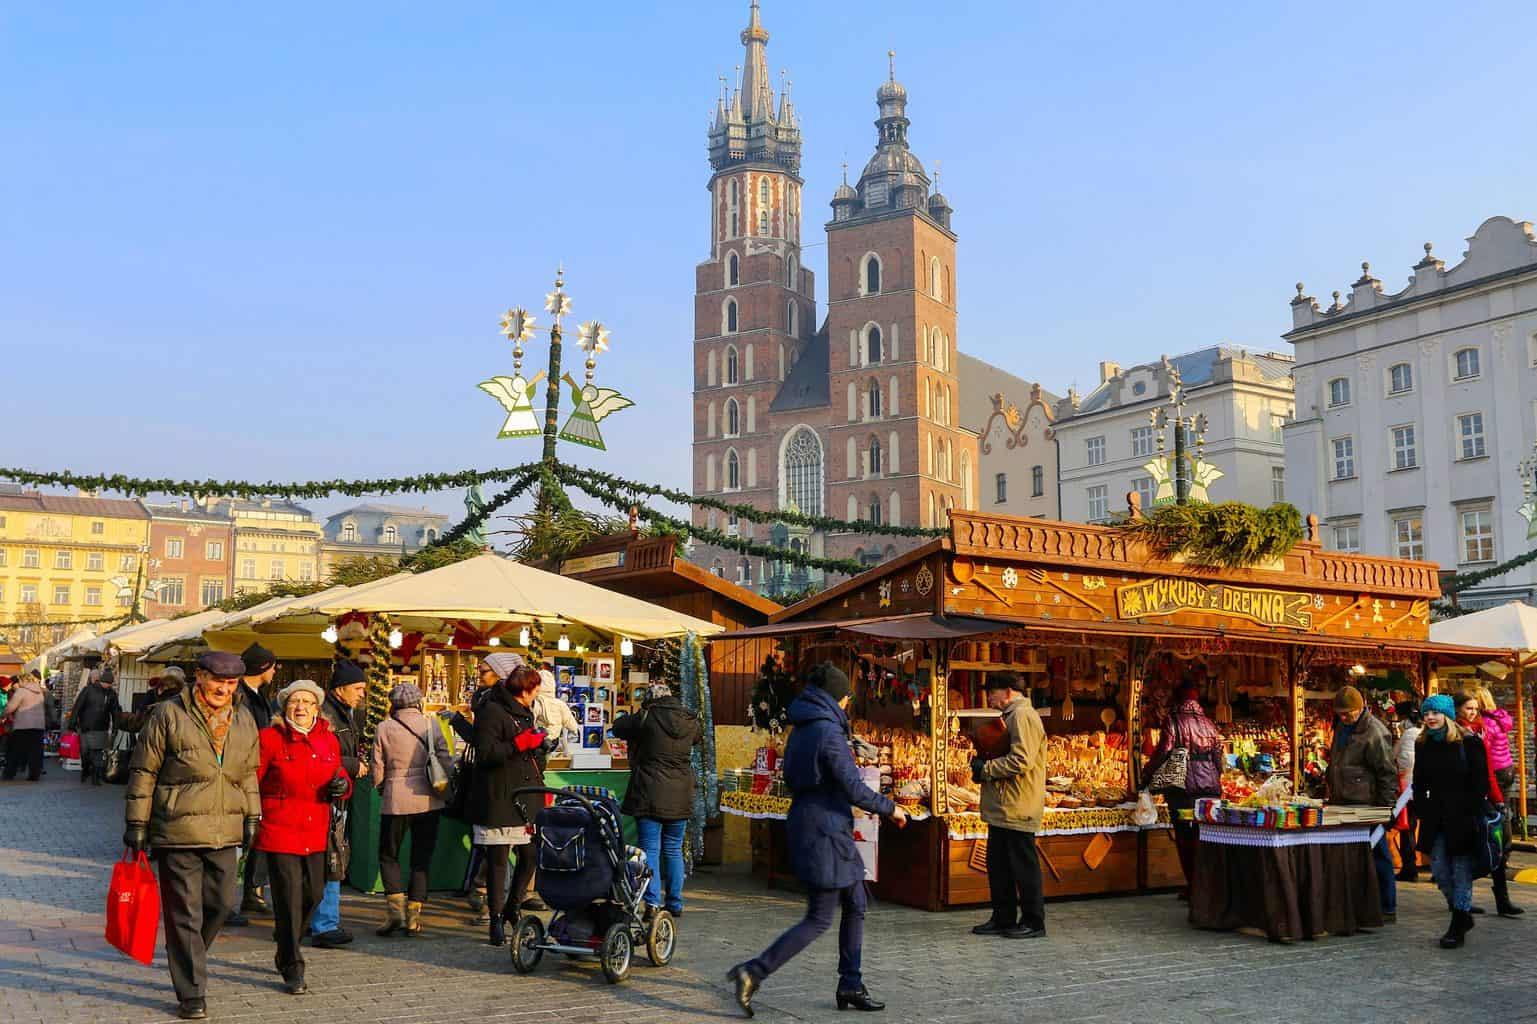 The annual Christmas fair held in the Main Market Square in Krakow, Poland. It's also one of the best places to spend Christmas in Europe.